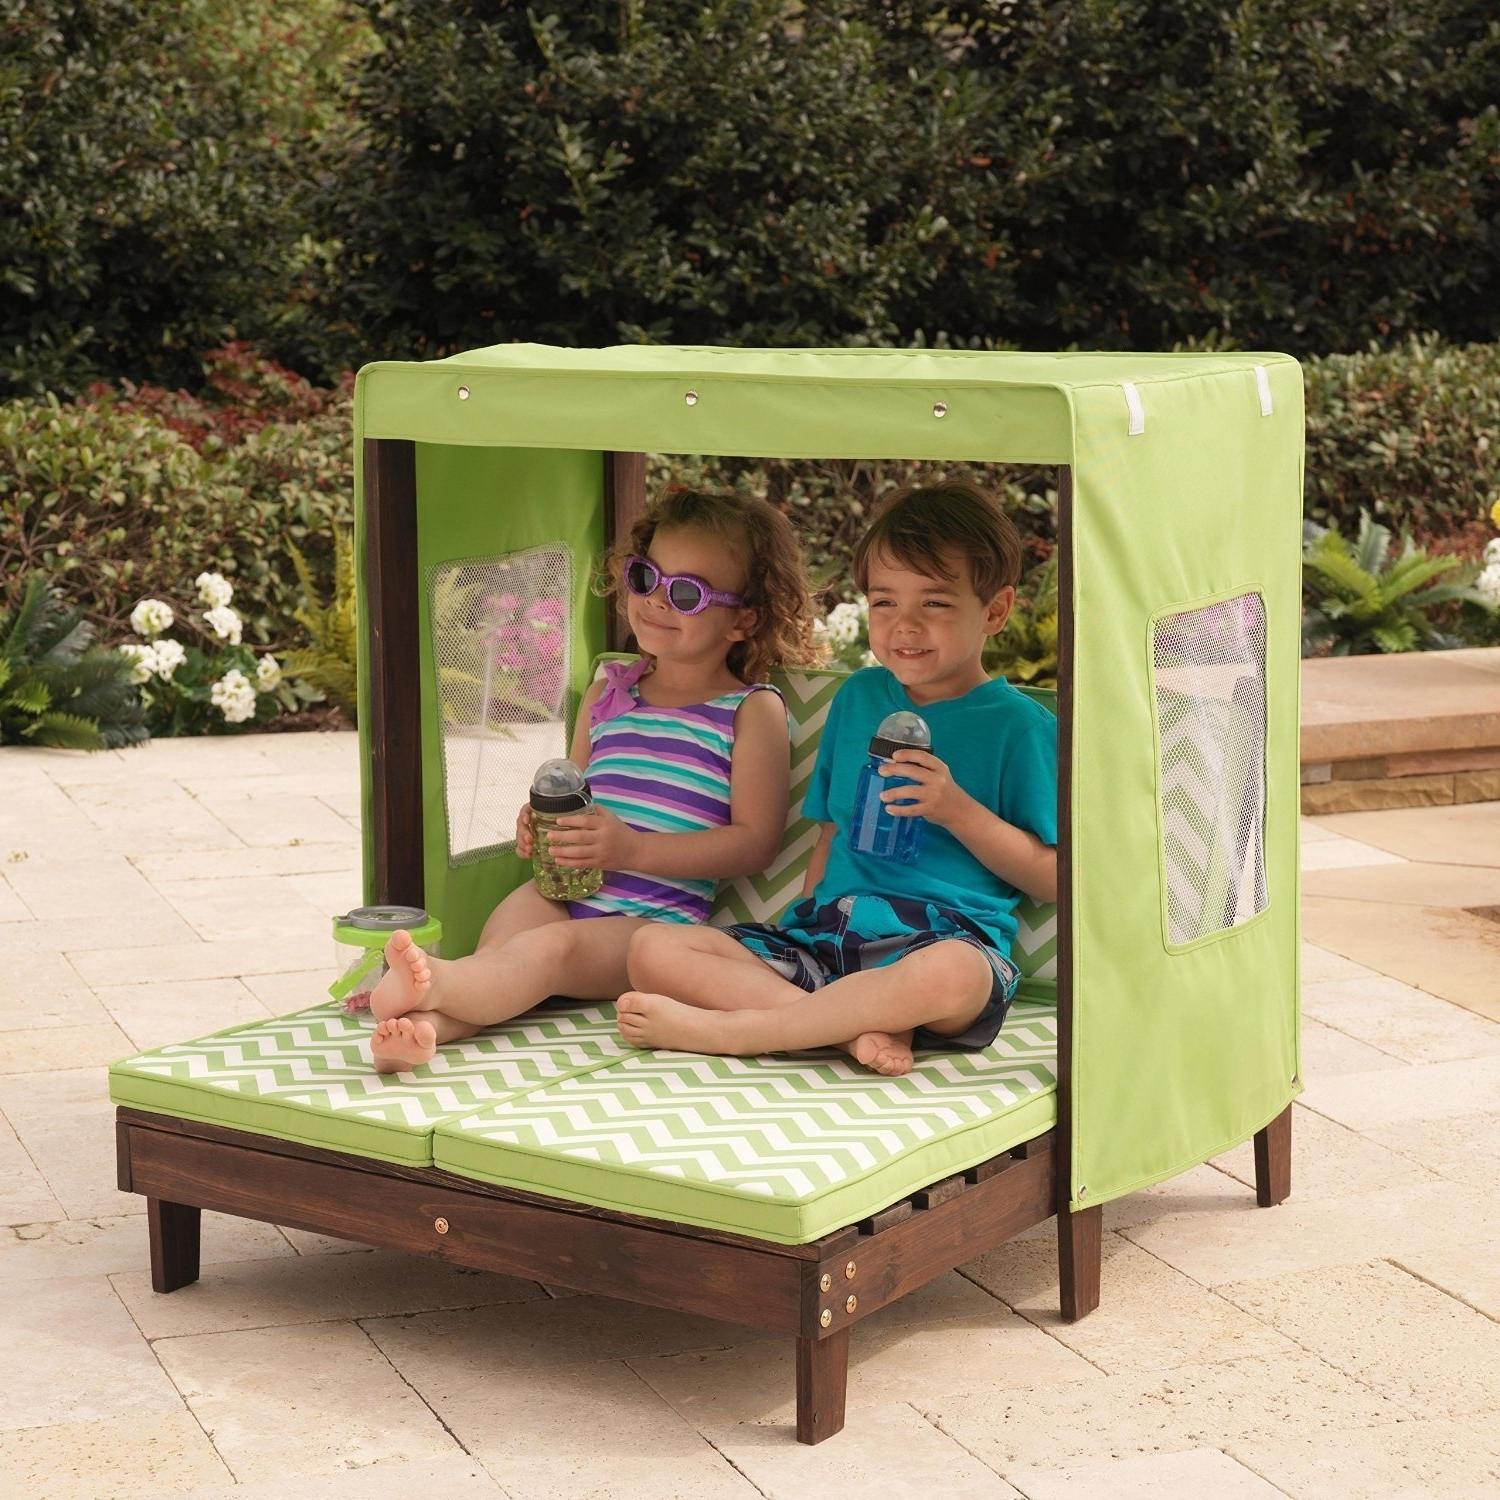 Kidkraft Double Chaise Lounges Within Newest Amazon: Kidkraft Outdoor Double Chaise Lounge Chair With (Gallery 3 of 15)